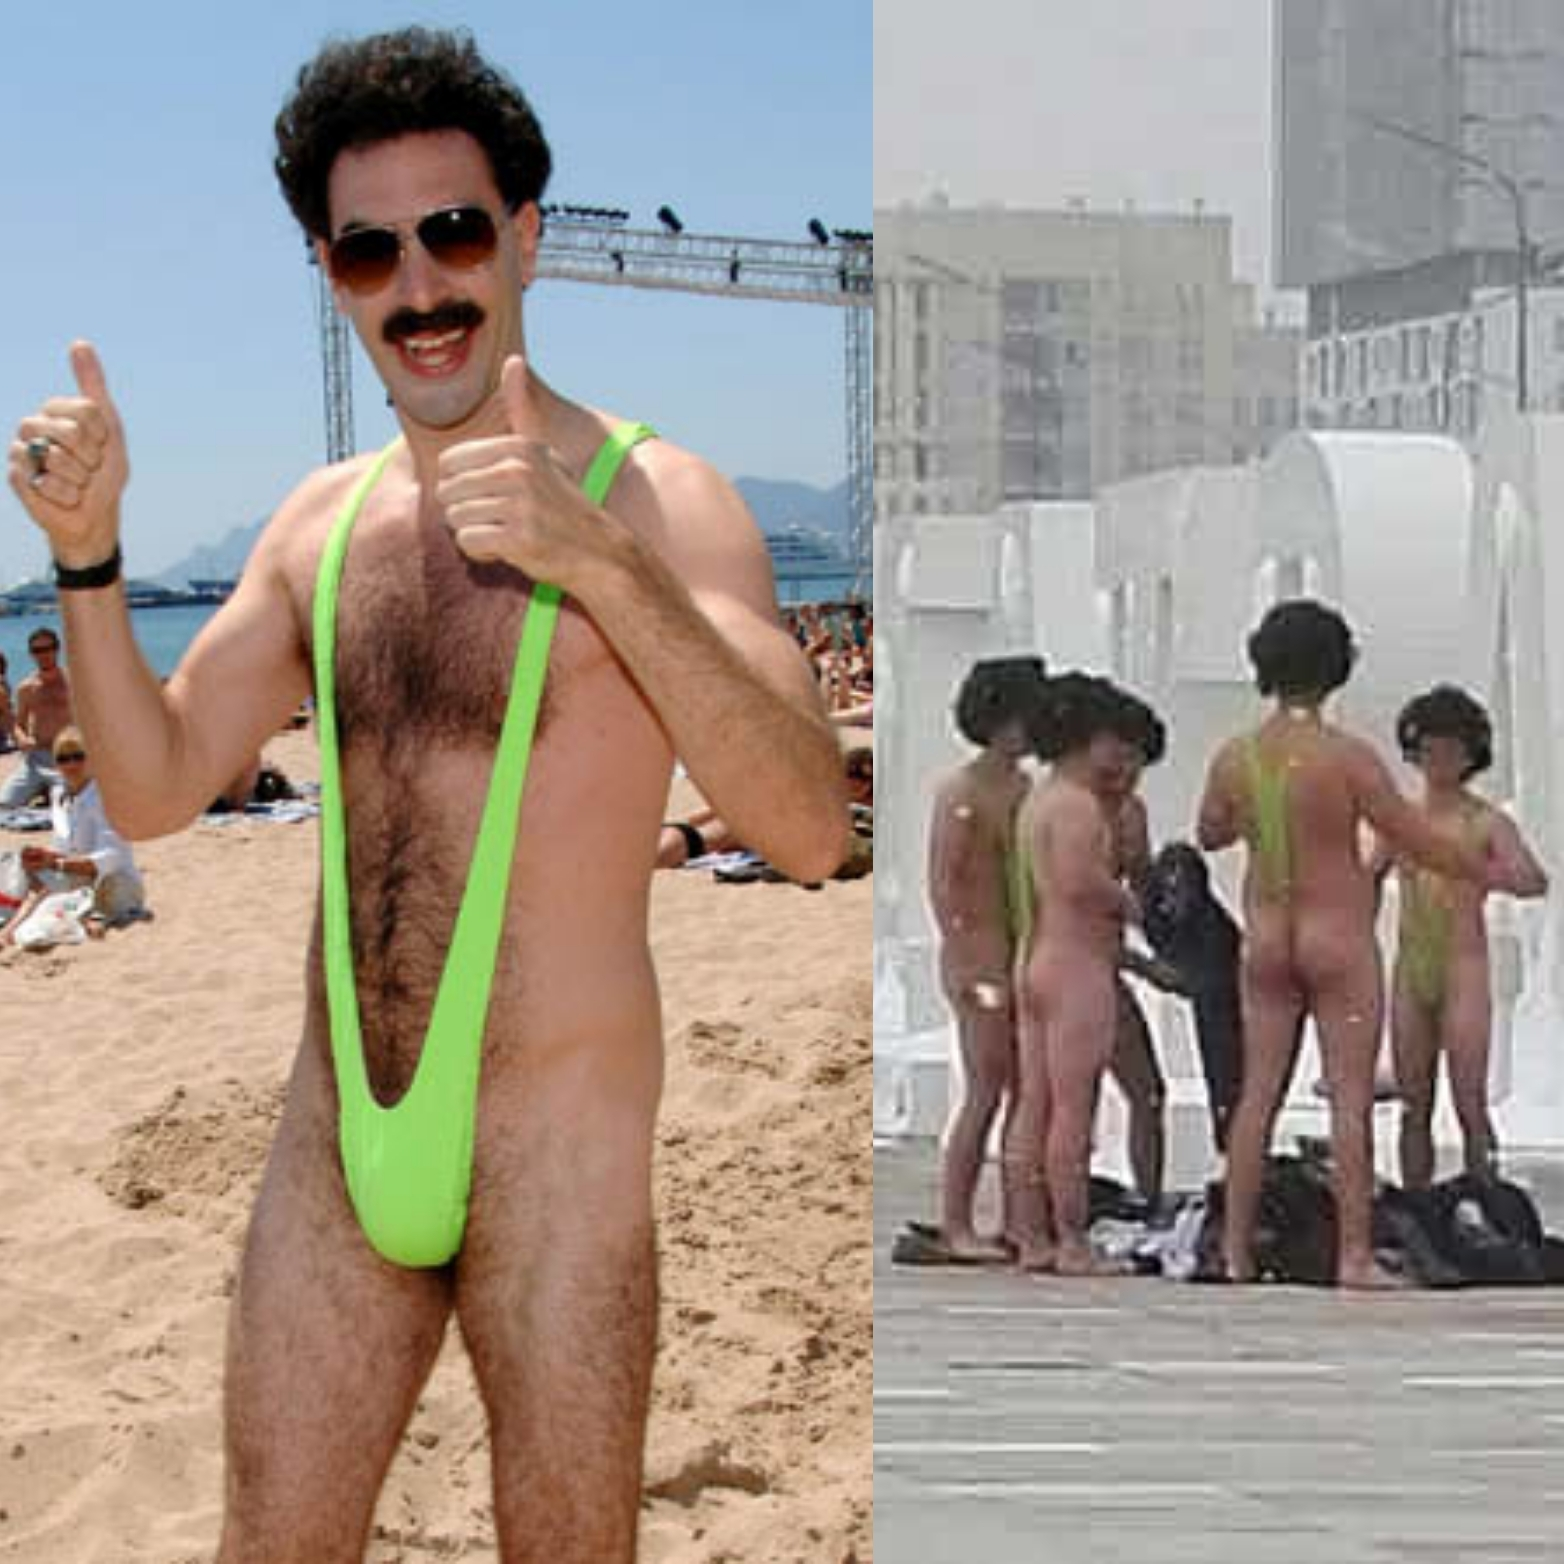 Sacha Baron Cohen 'Is a Very Nice' Man - Offers to Bail Out Czech Tourists Detained in Kazakhstan for Heinous Crime of Wearing 'Borat' Mankini's in Public - Czech Points